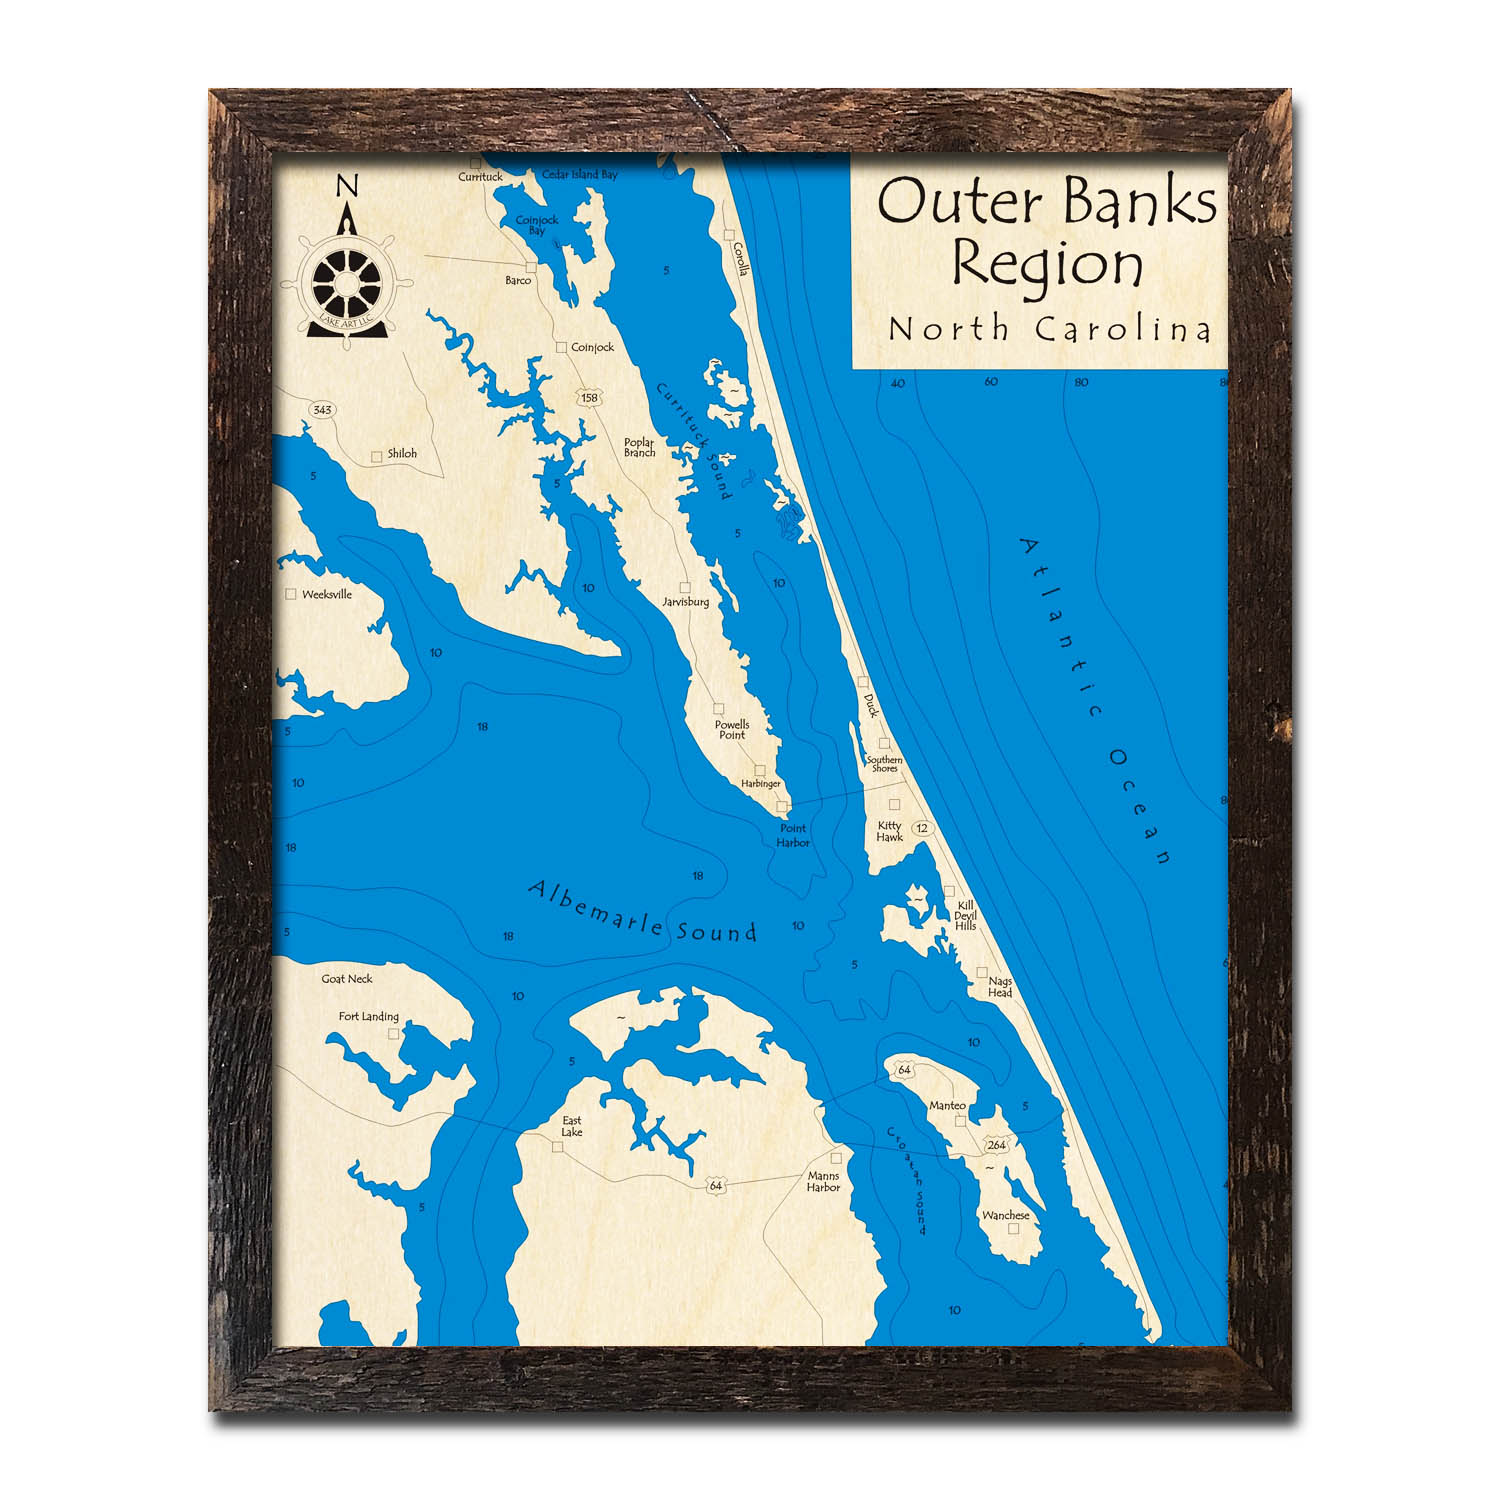 Outer Banks Region, NC Map | Framed 3D Nautical Wood Maps on outer banks mile marker map, nags head map, oregon inlet outer banks map, nyc map, ogg map, travel map, fishing map, icon map, nc map, one map, otc map, ob map, hawk map, carolina outer banks map, old map, occ map, beach map, outer banks 4x4 map,